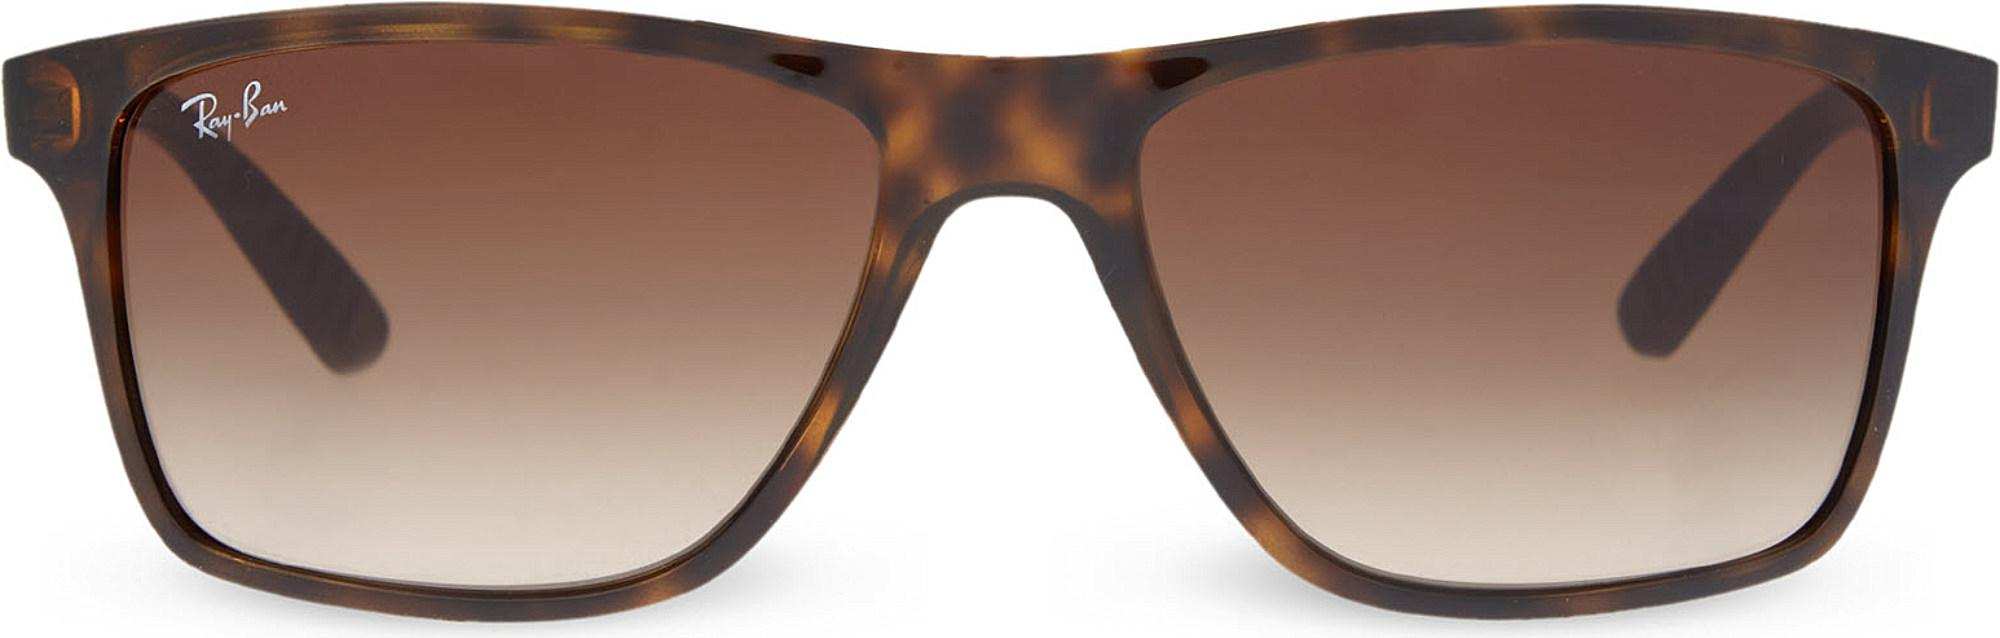 8bb7a4ff3d3 Lyst - Ray-Ban Rb4234 Tortoise Shell Rectangular Sunglasses in Brown